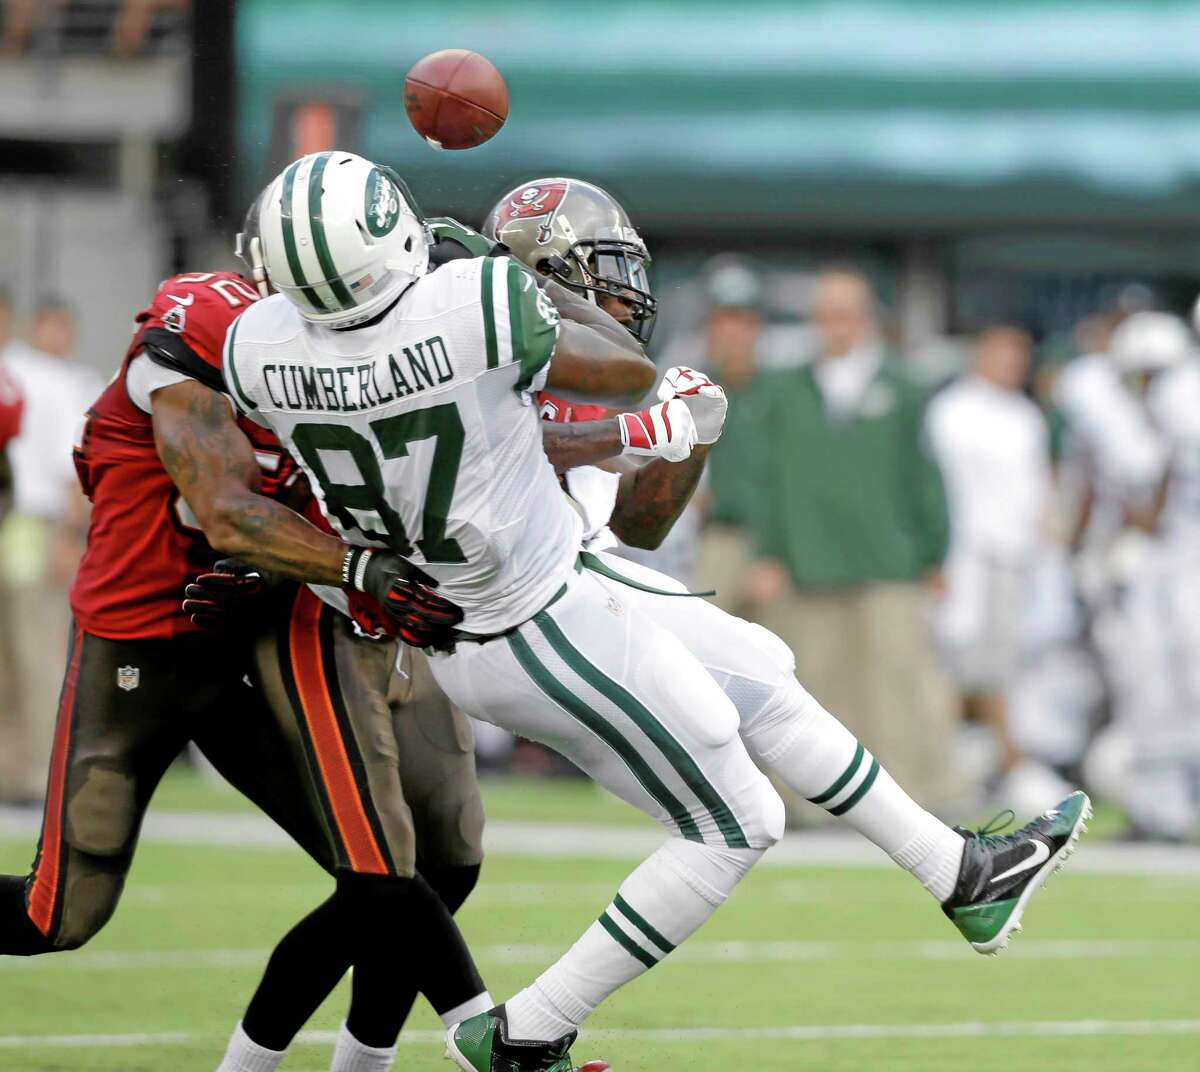 Jets tight end Jeff Cumberland (87) gets the ball knocked out by a hit from Tampa Bay Buccaneers free safety Dashon Goldson, right, and outside linebacker Jonathan Casillas during a Sept. 8 game in East Rutherford, N.J. The Buccaneers were penalized for an unnecessary roughness call on the play.